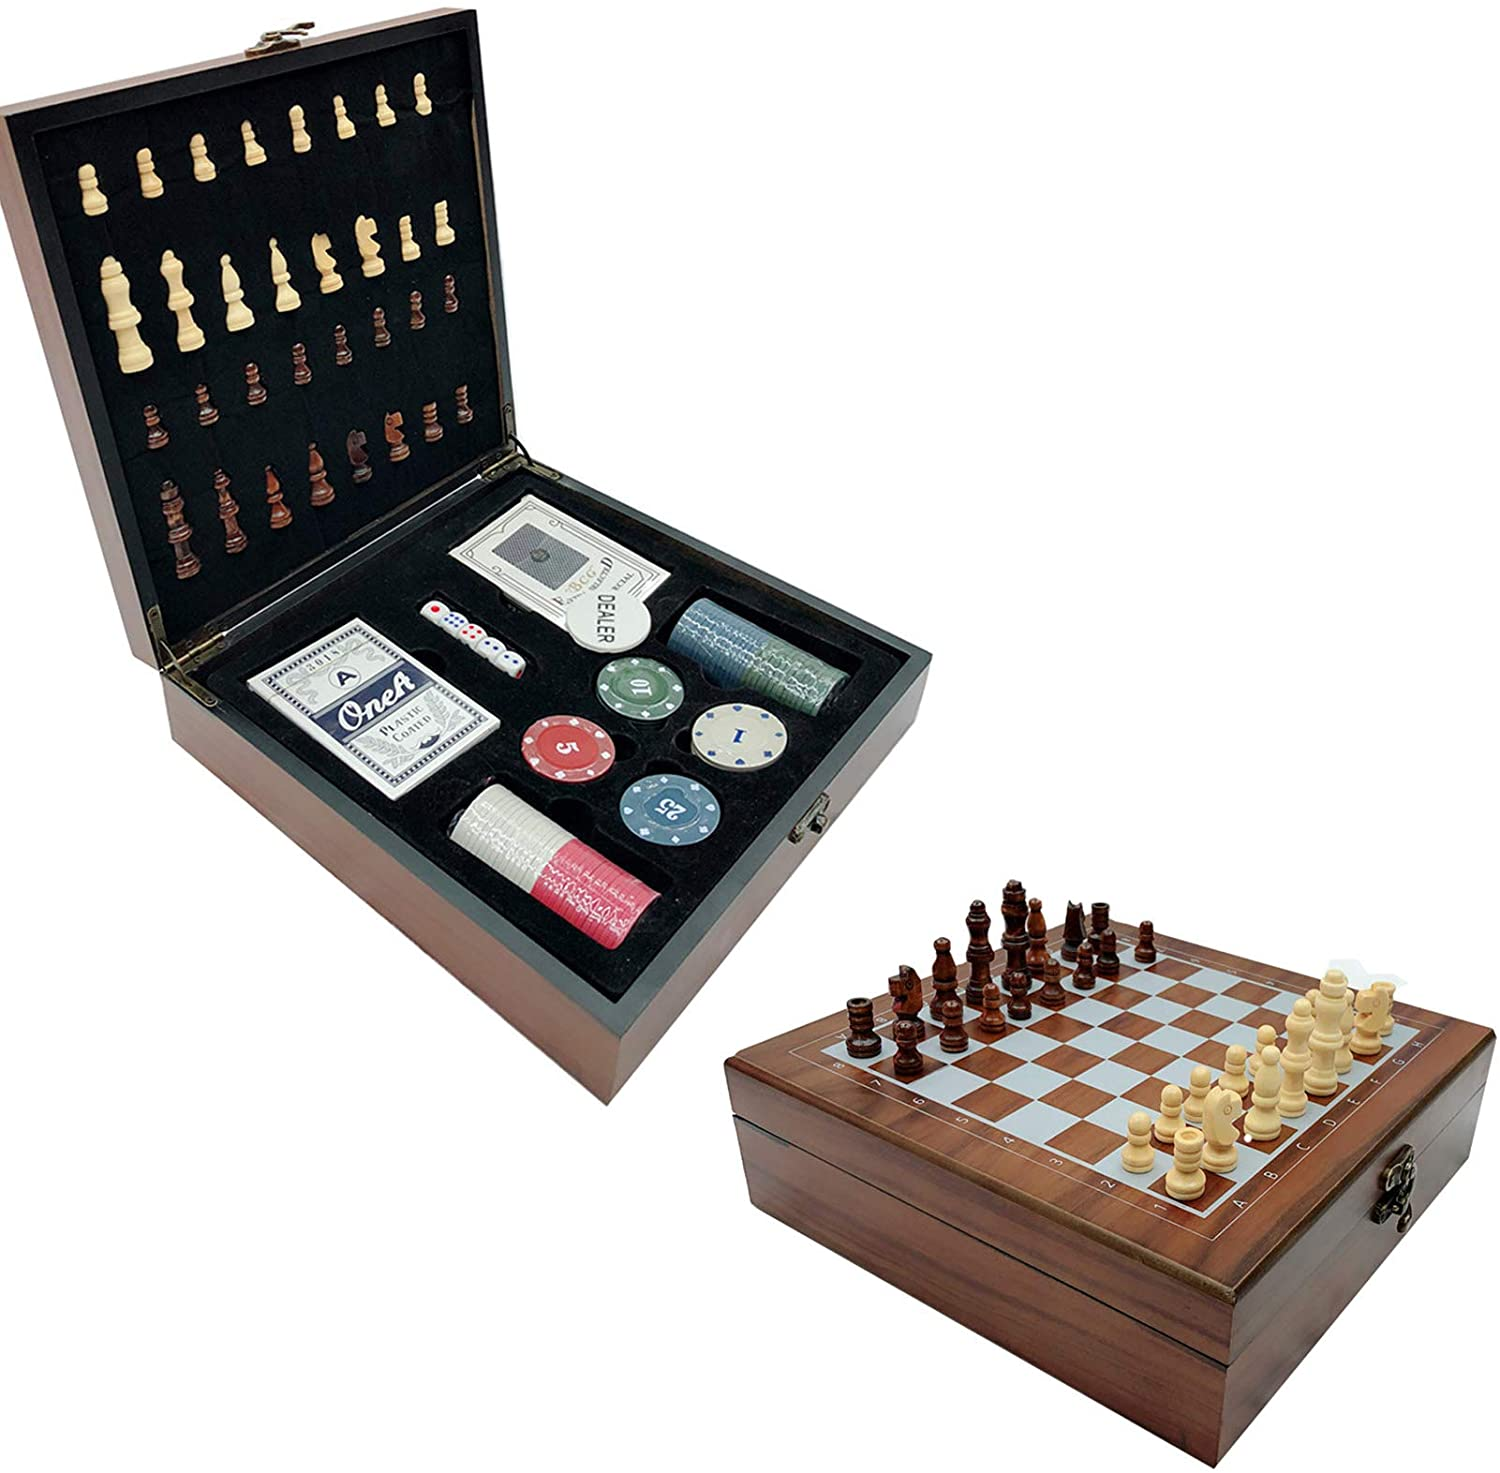 LRRJJ 4 IN 1 PORTABLE CHESS SET POKER CHIPS PLAYING CARDS DICE FOLDING CHESS BOARD TRAVEL CHESS GAMES FOR CHILDREN AND FRIENDS